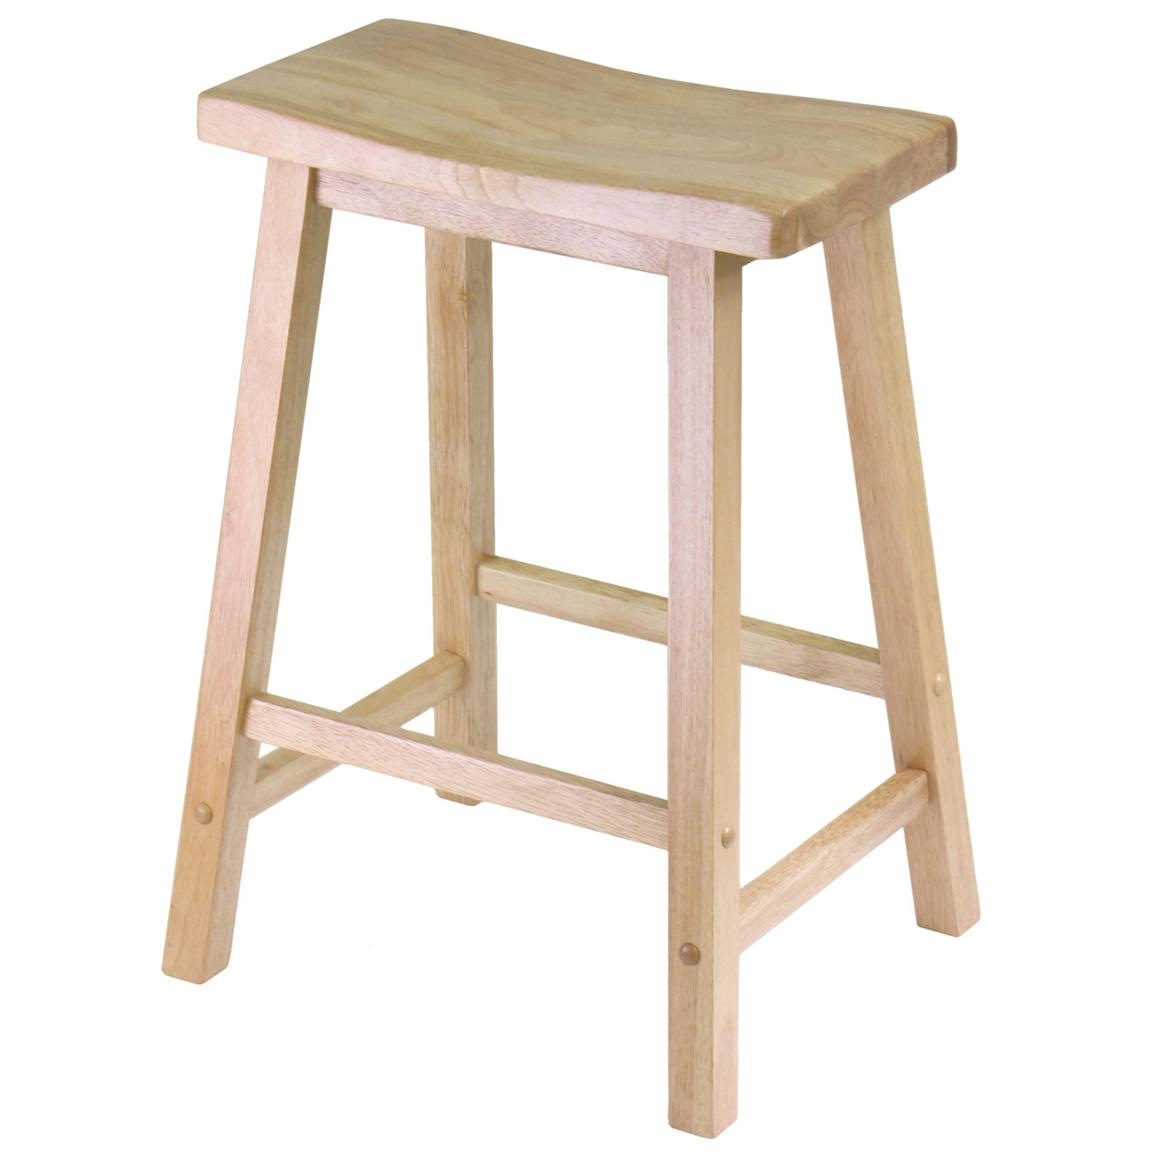 24 inch Winsome Saddle Seat Stool